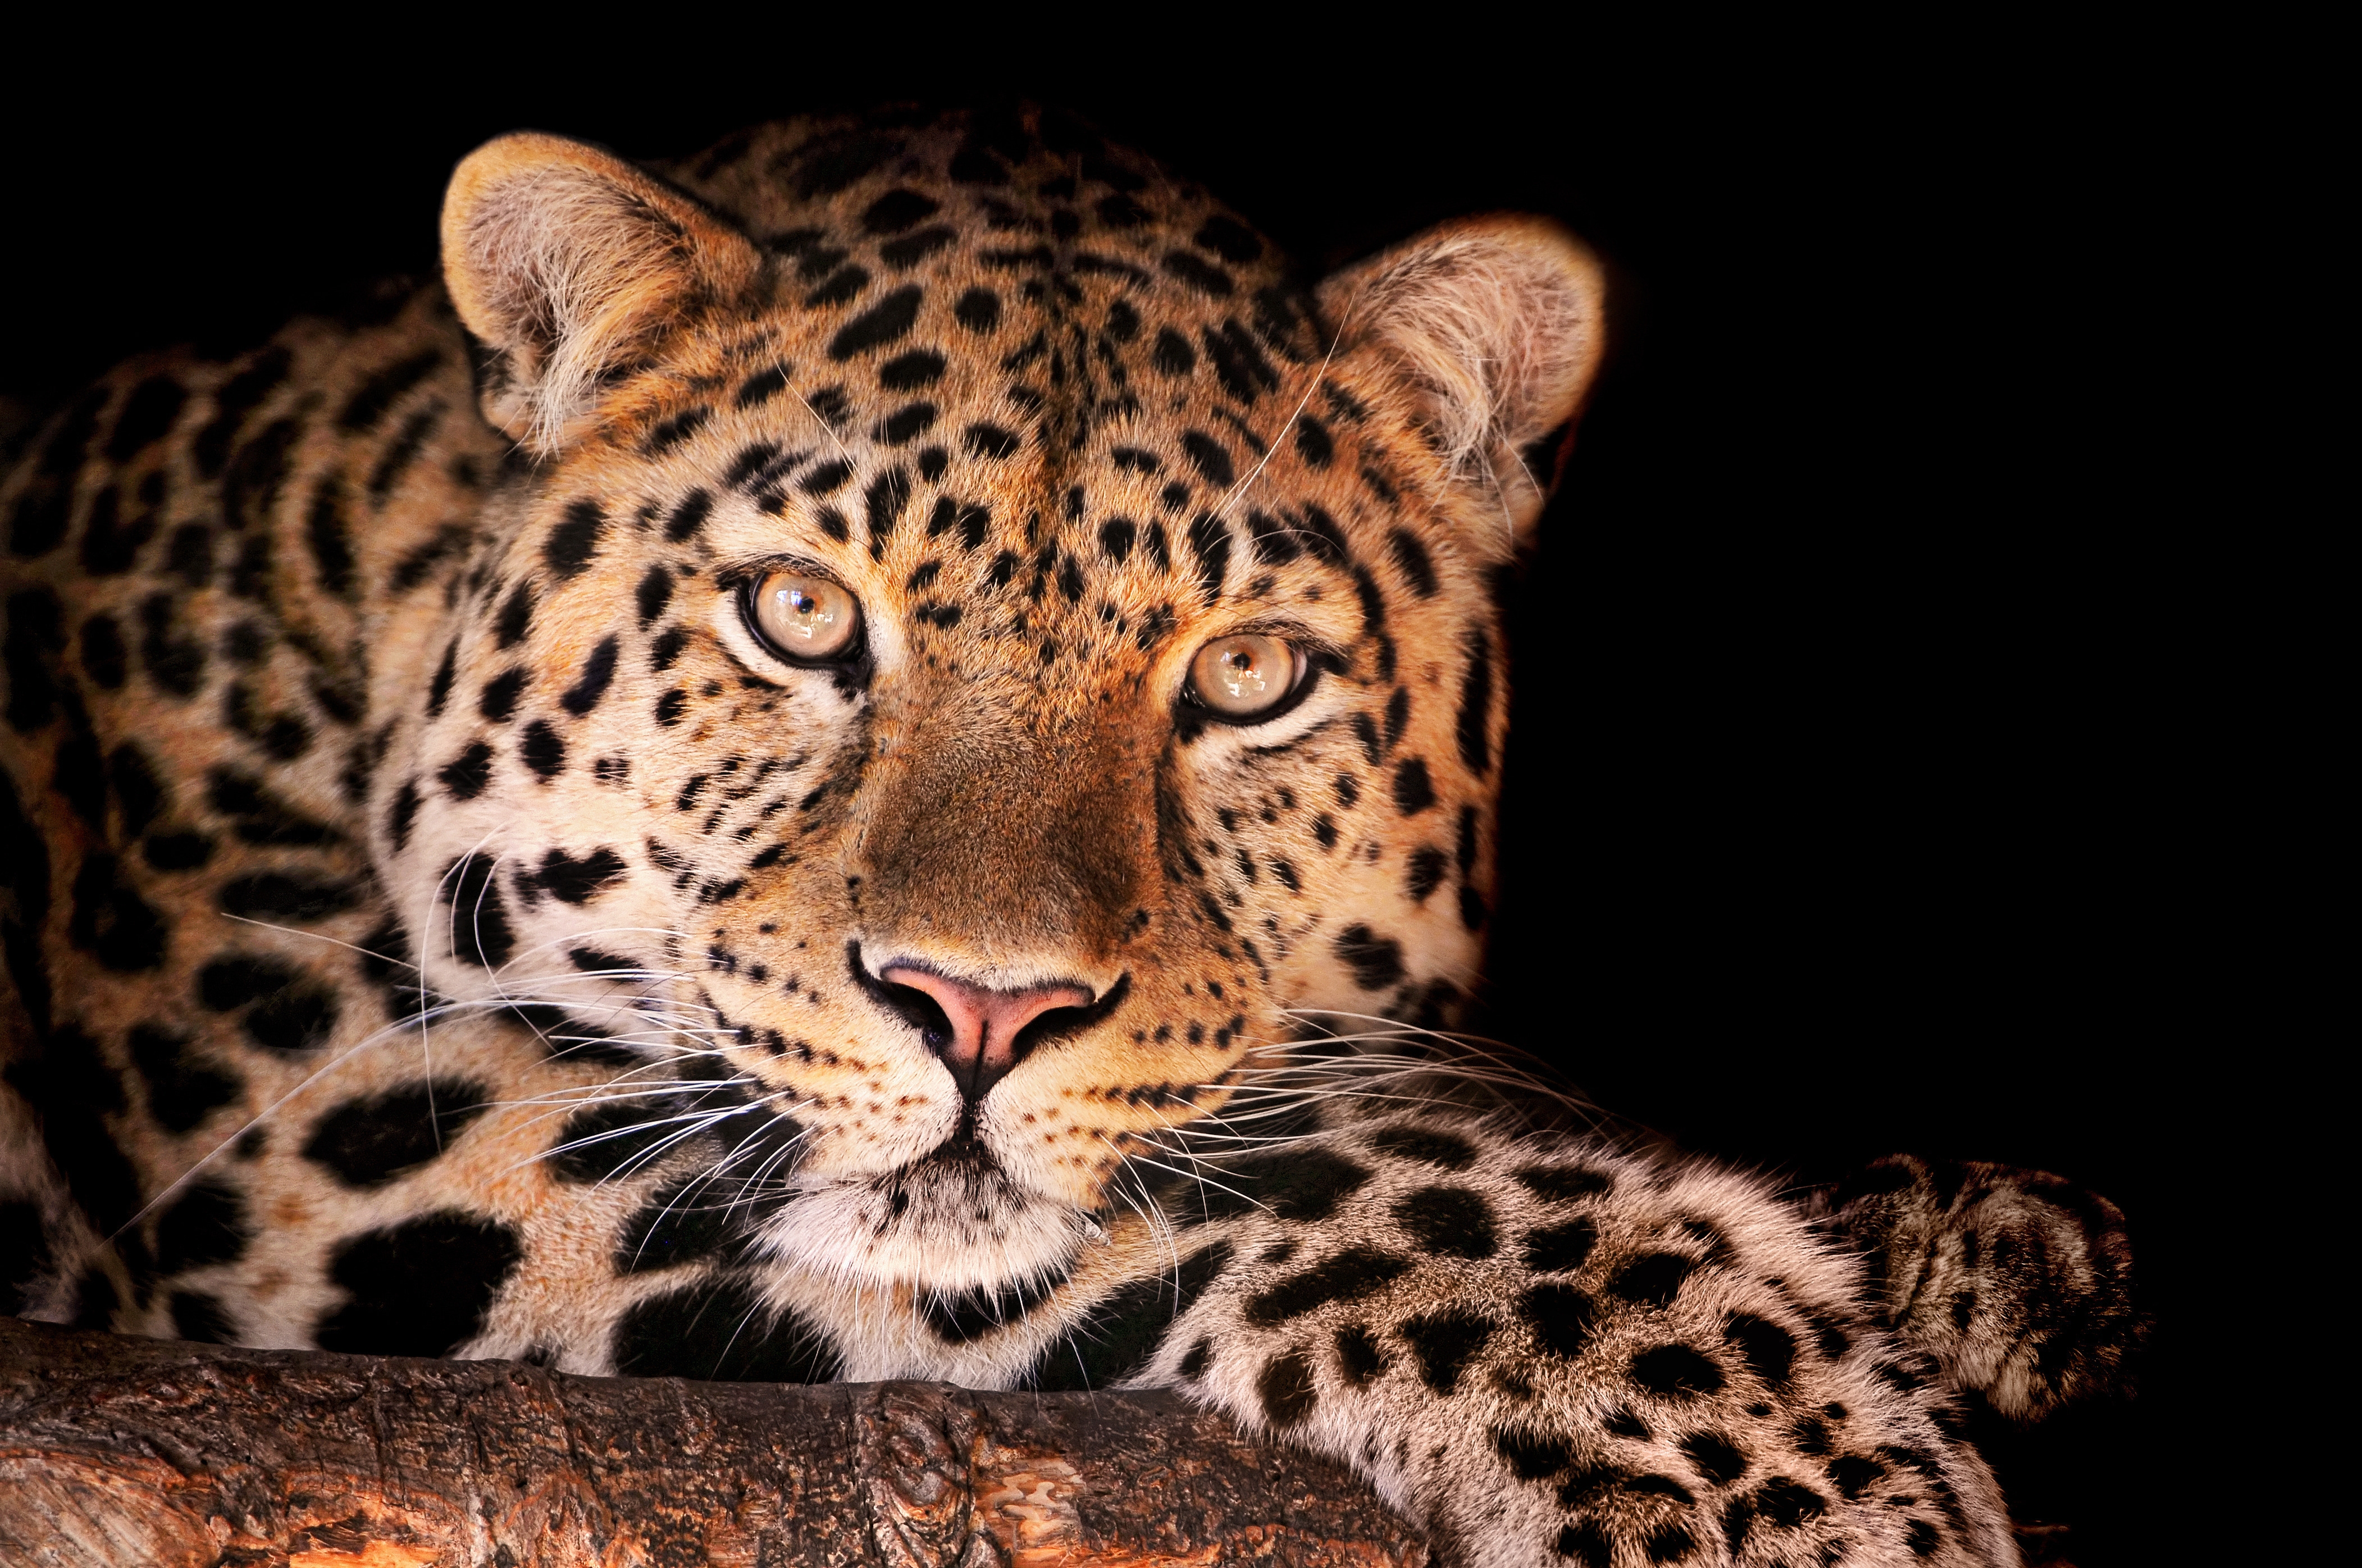 53276 download wallpaper Animals, Leopard, Muzzle, Dark, Spotted, Spotty screensavers and pictures for free